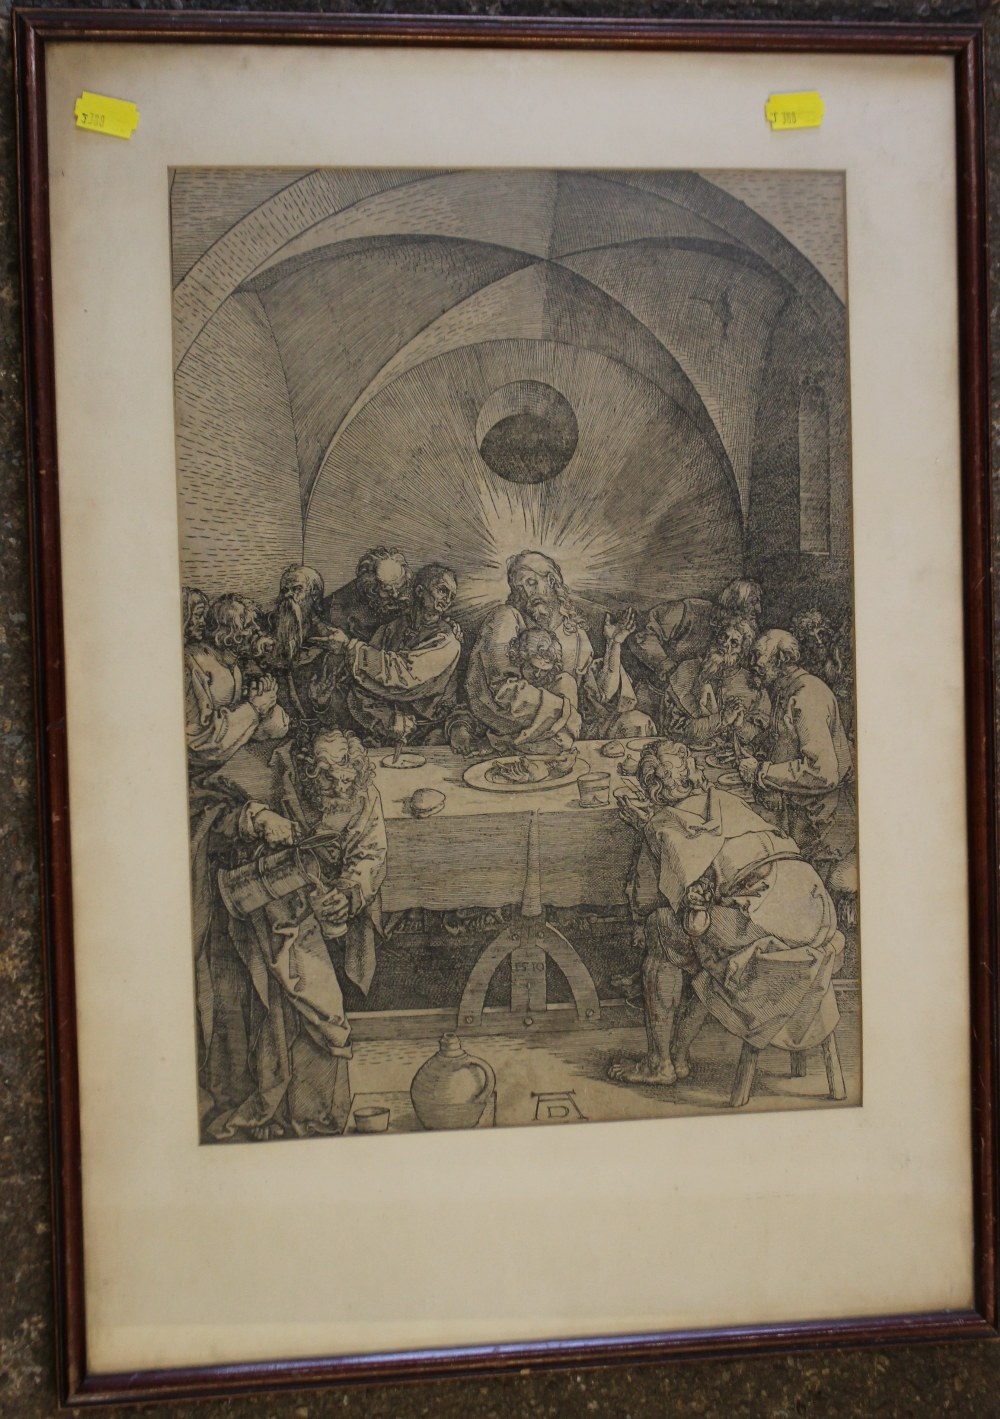 Lot 66 - AFTER ALBRECHT DURER (1471-1528). German school, 19th century religious interior scene with Jesus